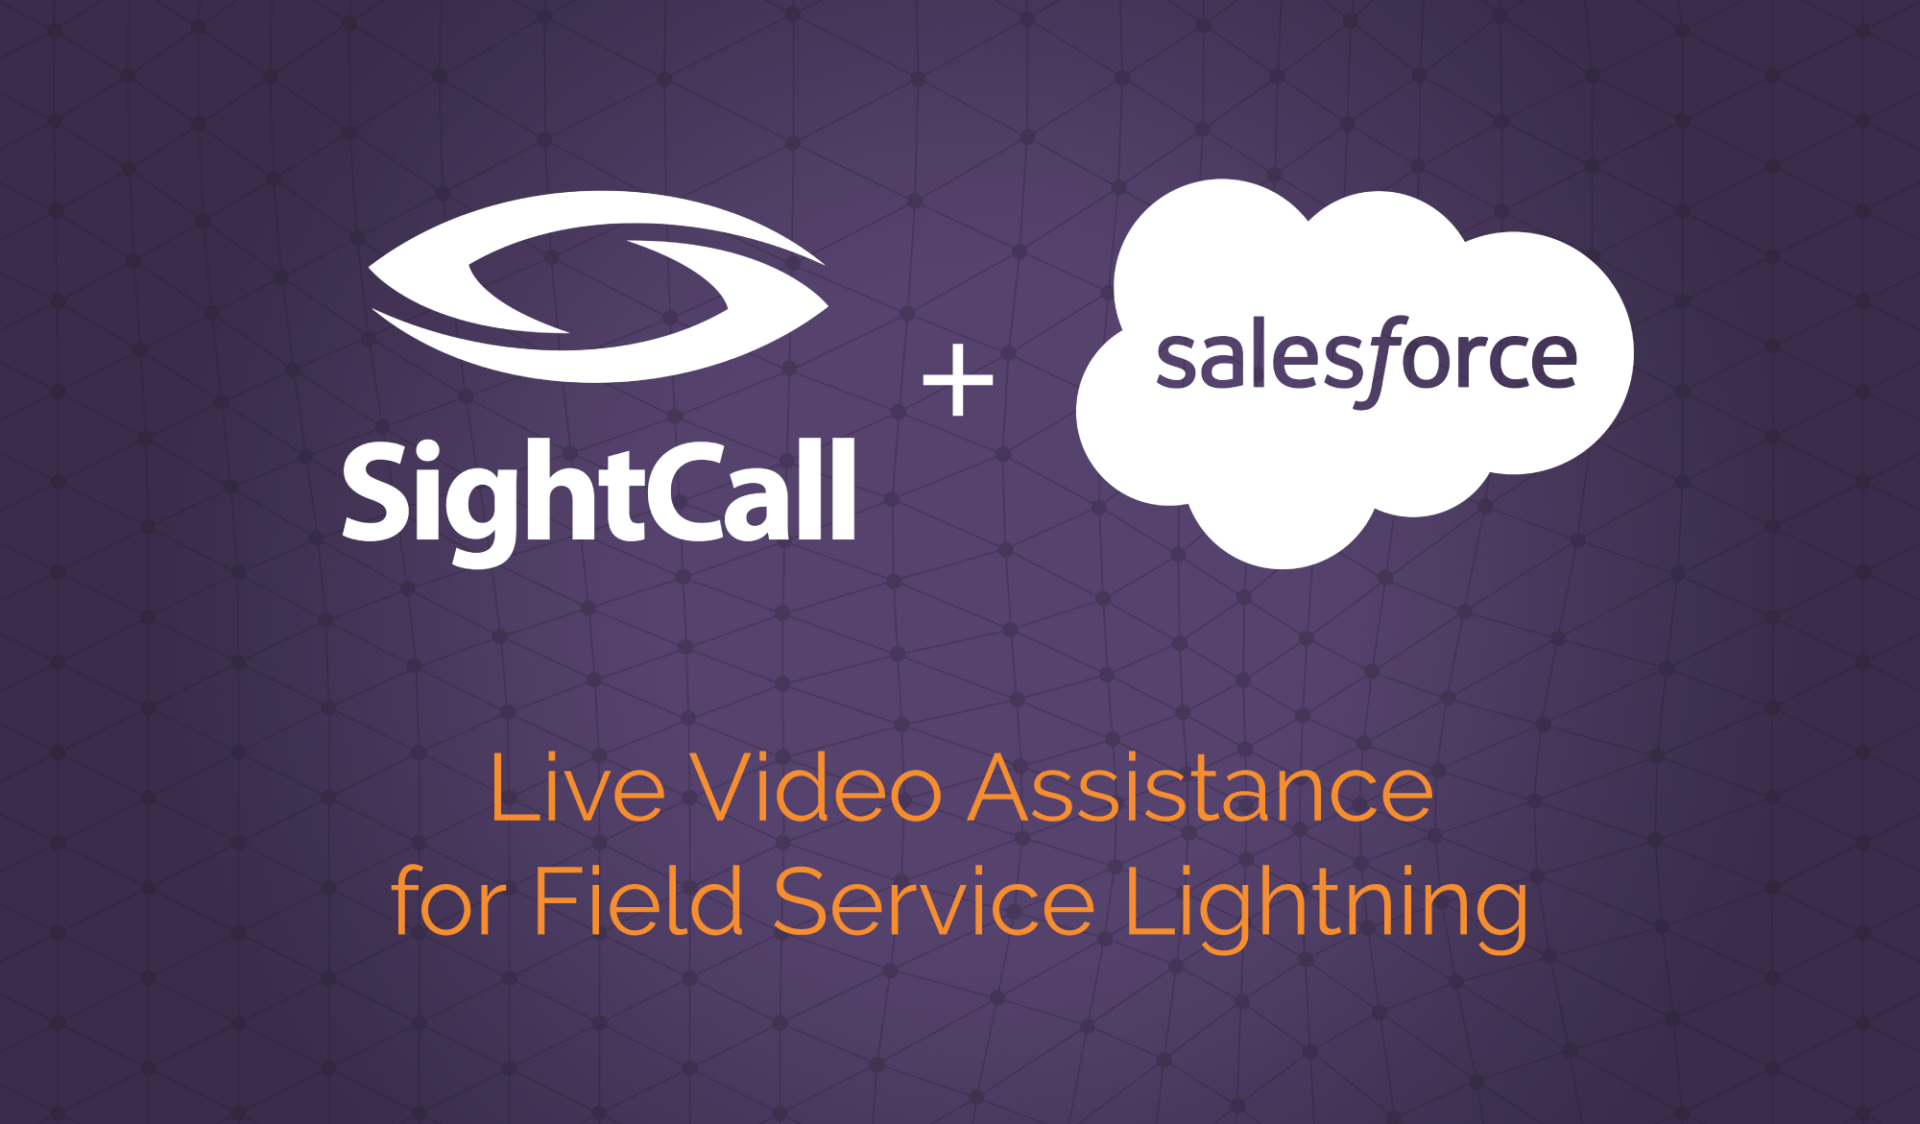 Live Video Assistance for Field Service Lightning